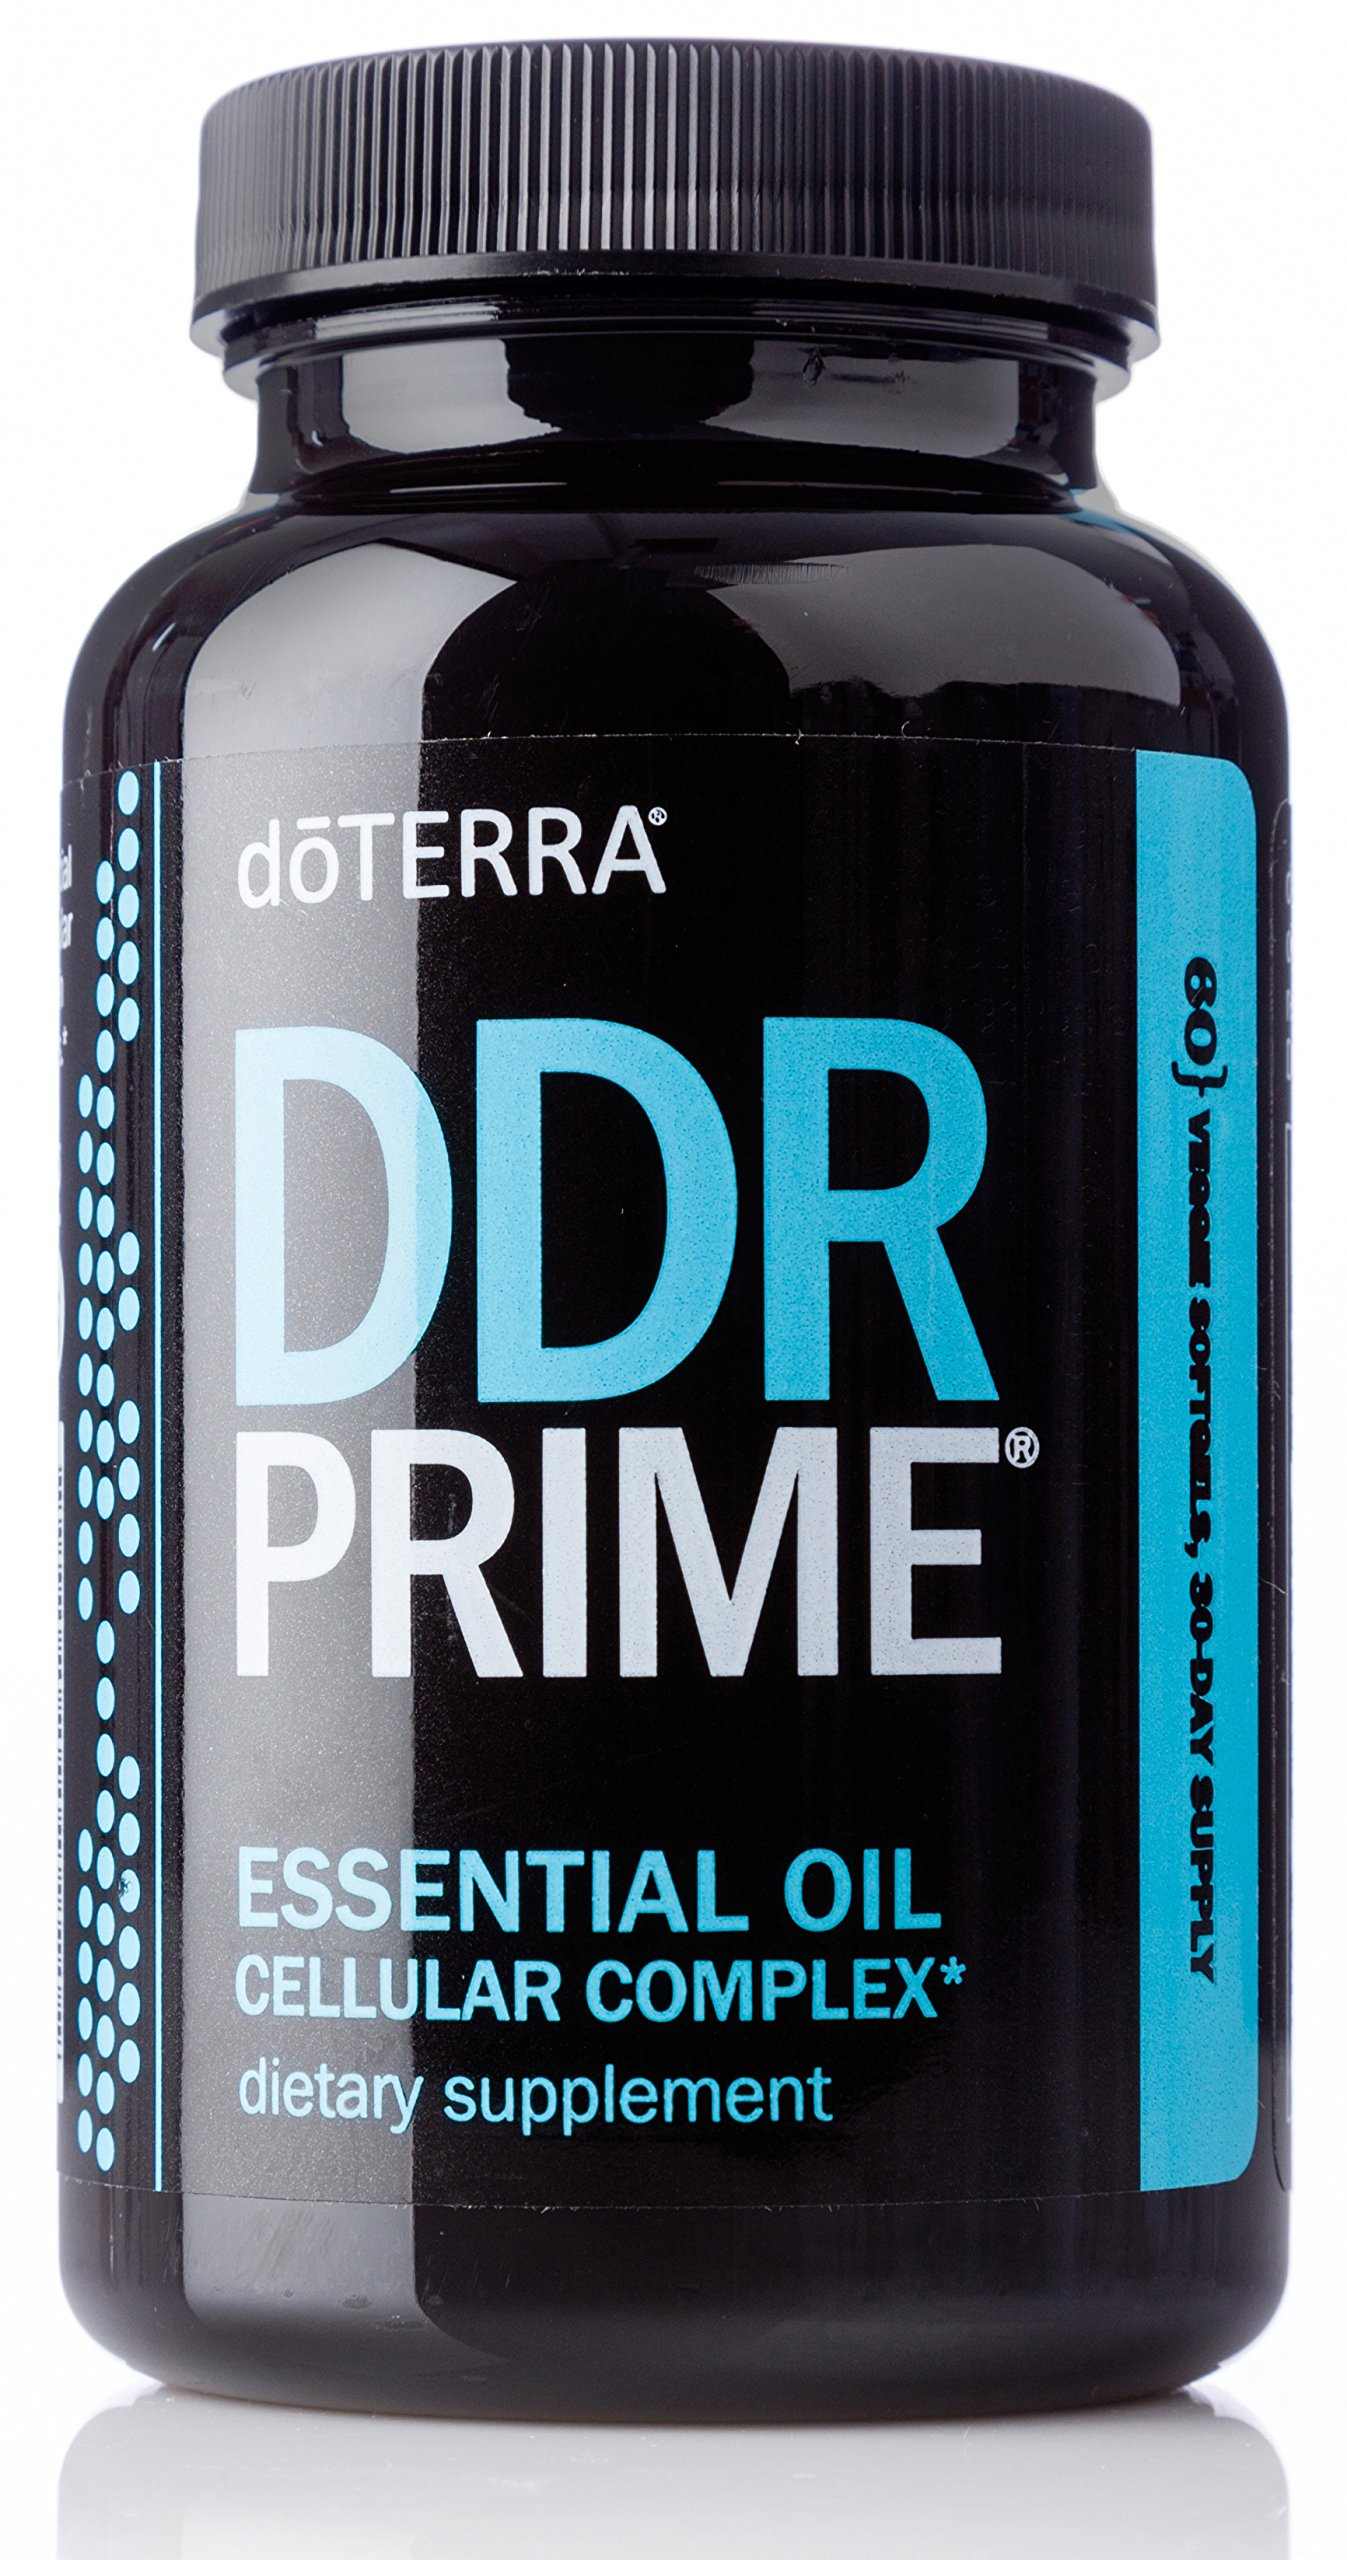 doTERRA - DDR Prime Softgels Essential Oil Complex - 60 Softgels (30 Day Supply) by DoTerra